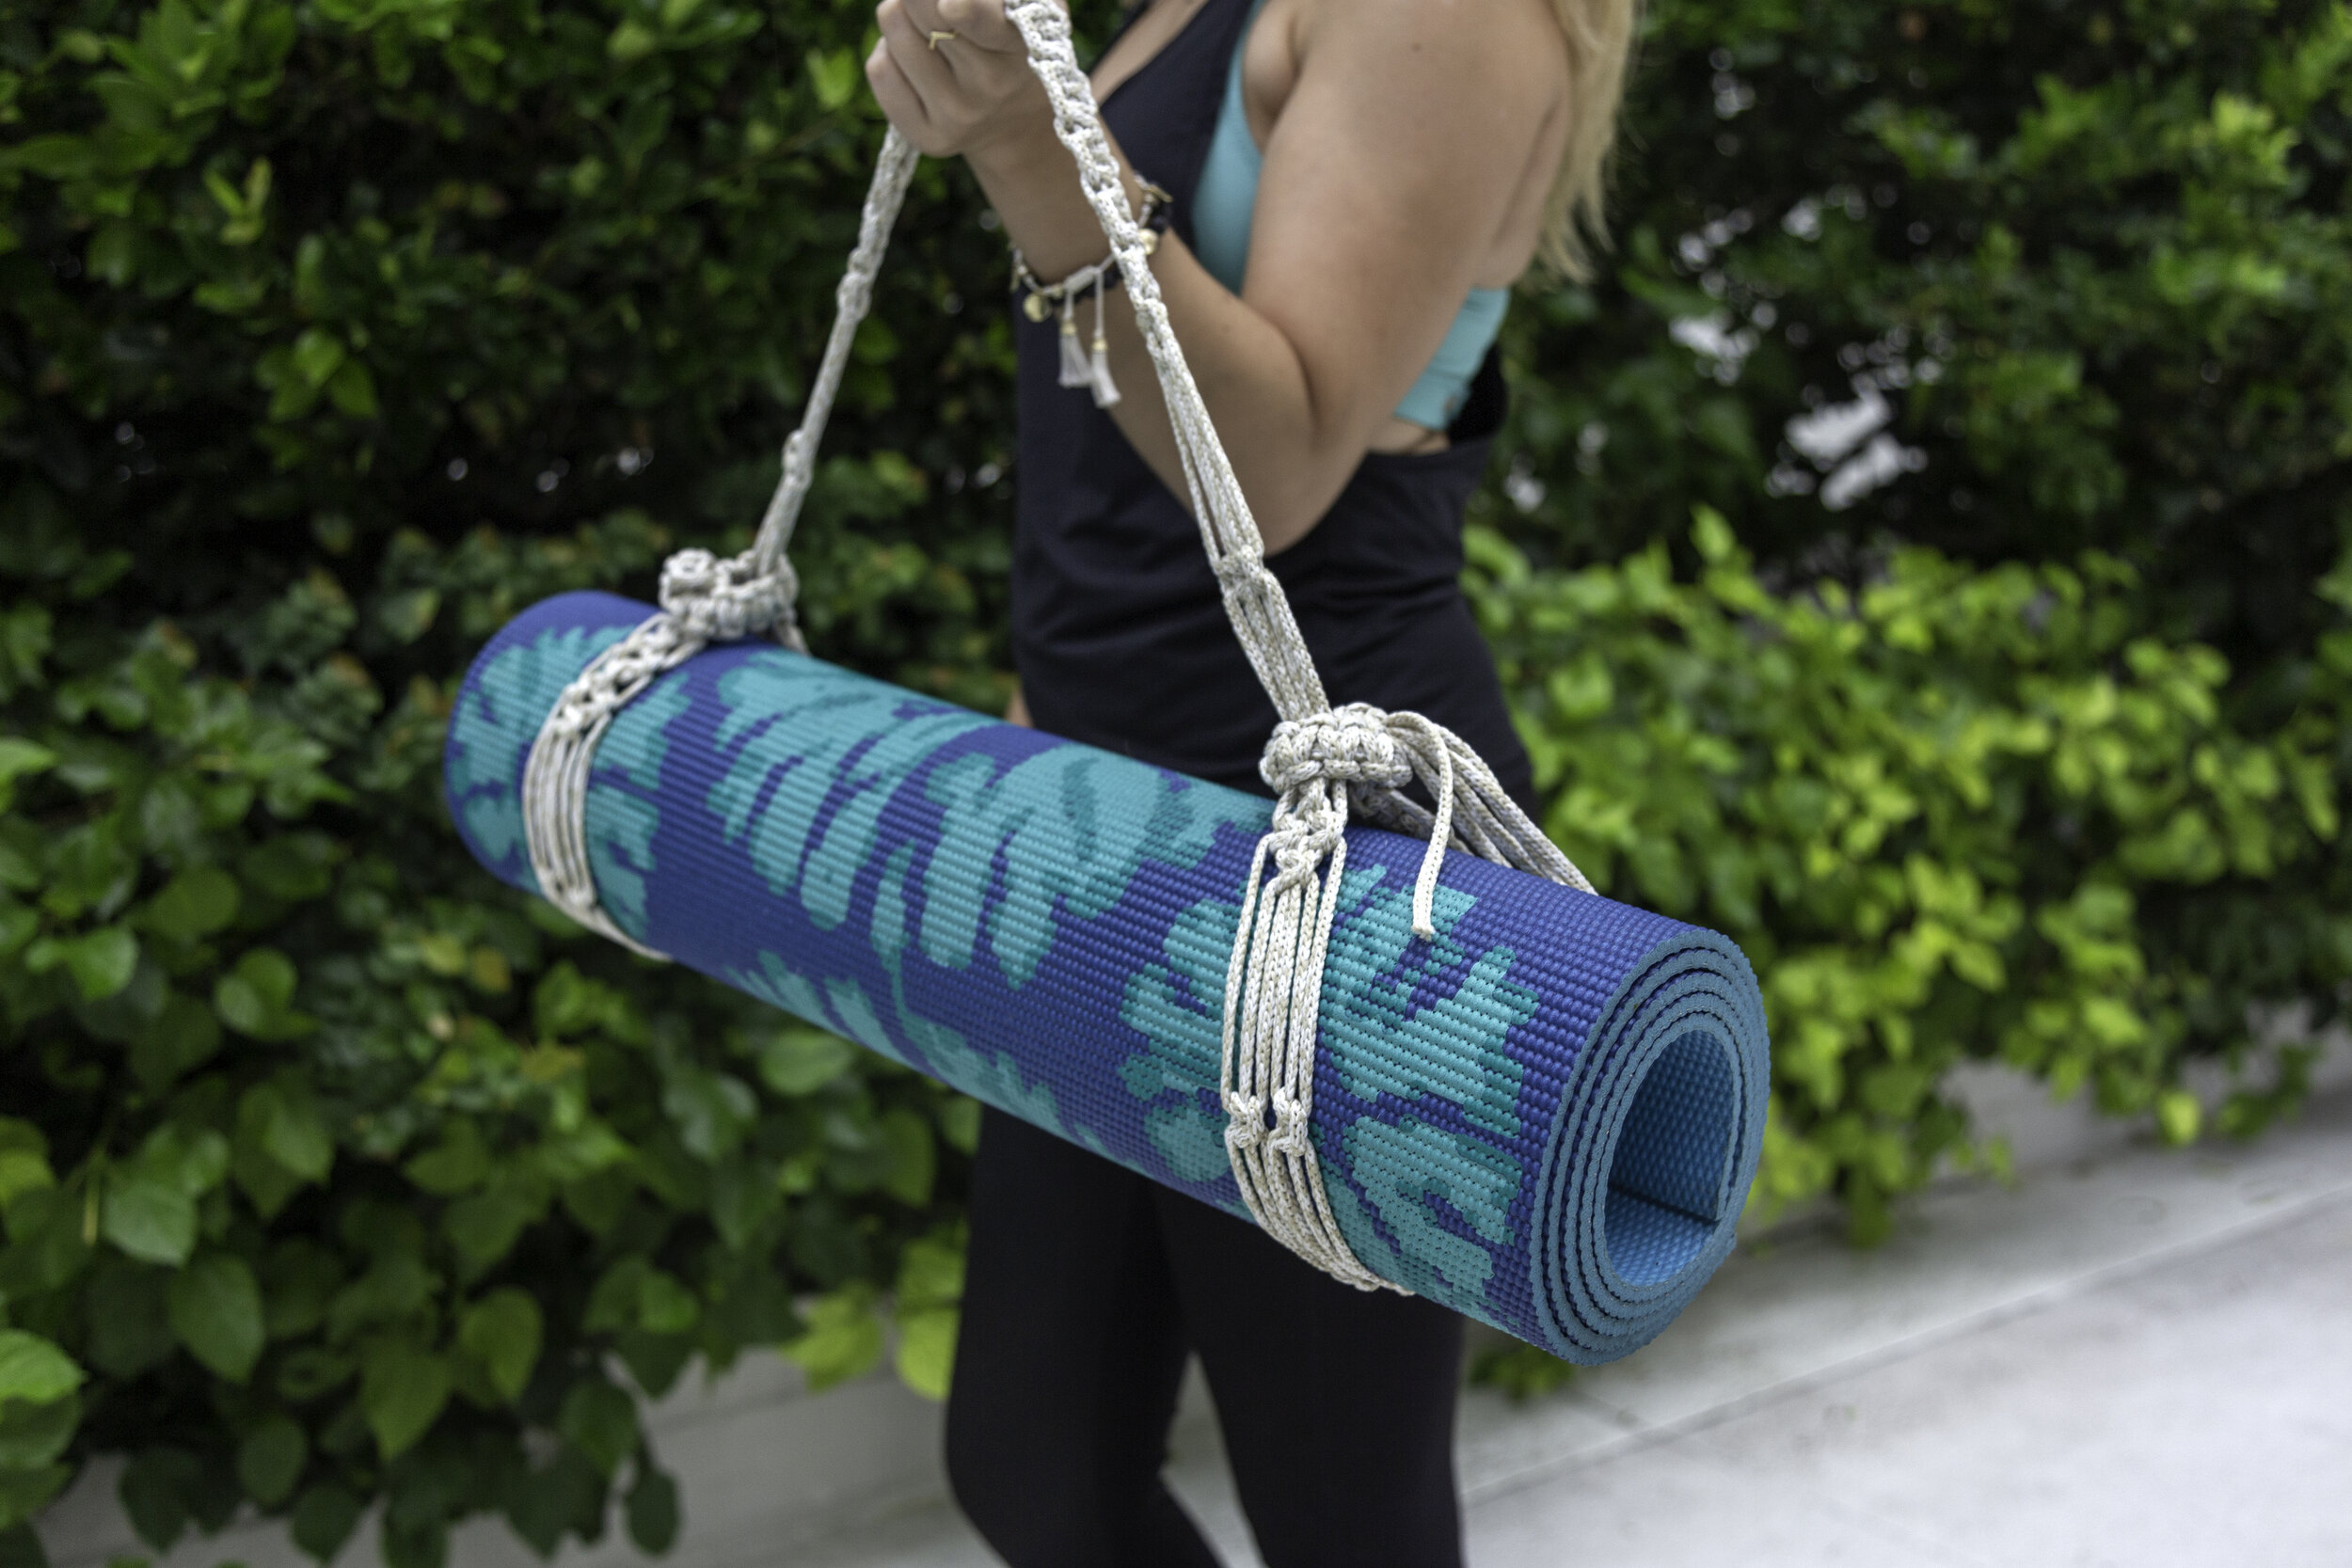 Stretch and carry - MacraMAKE a useful accessory in this special Yoga Mat Macrame Workshop with Macrame Momma. Use your strap to carry your mat to class and then use it to reach that deep stretch during class!